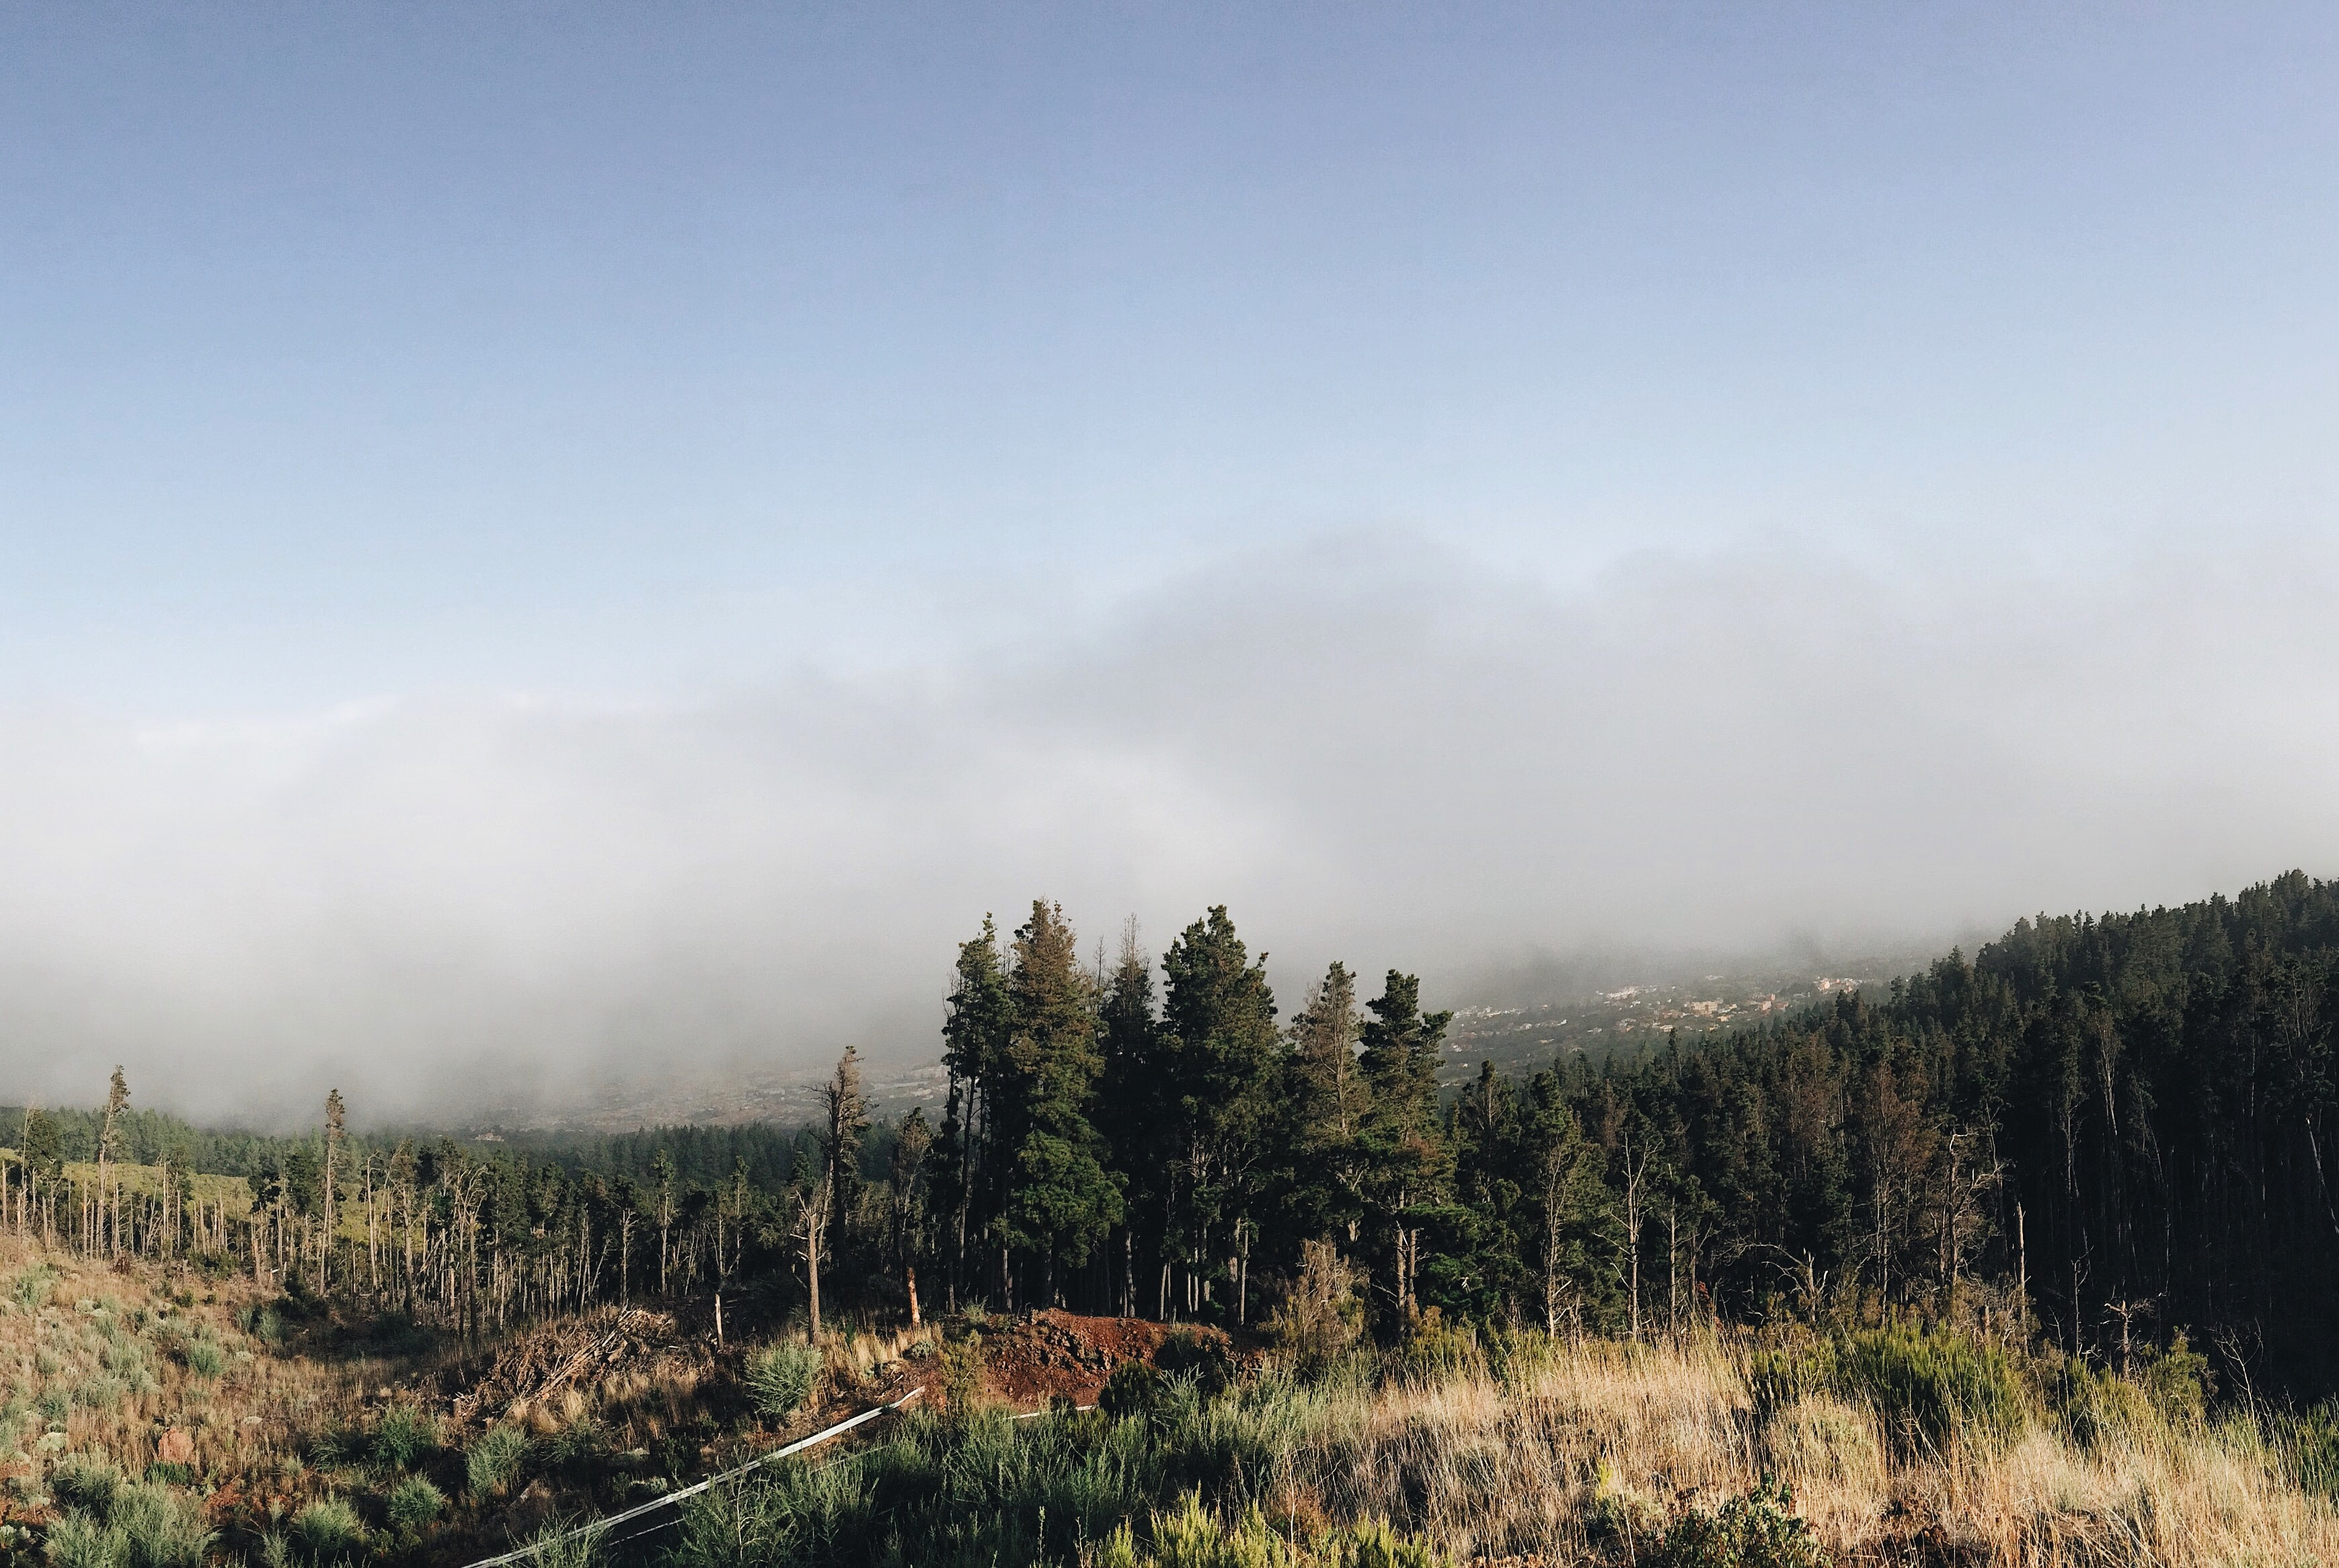 The edge of a coniferous forest with thick fog gathering in the distance